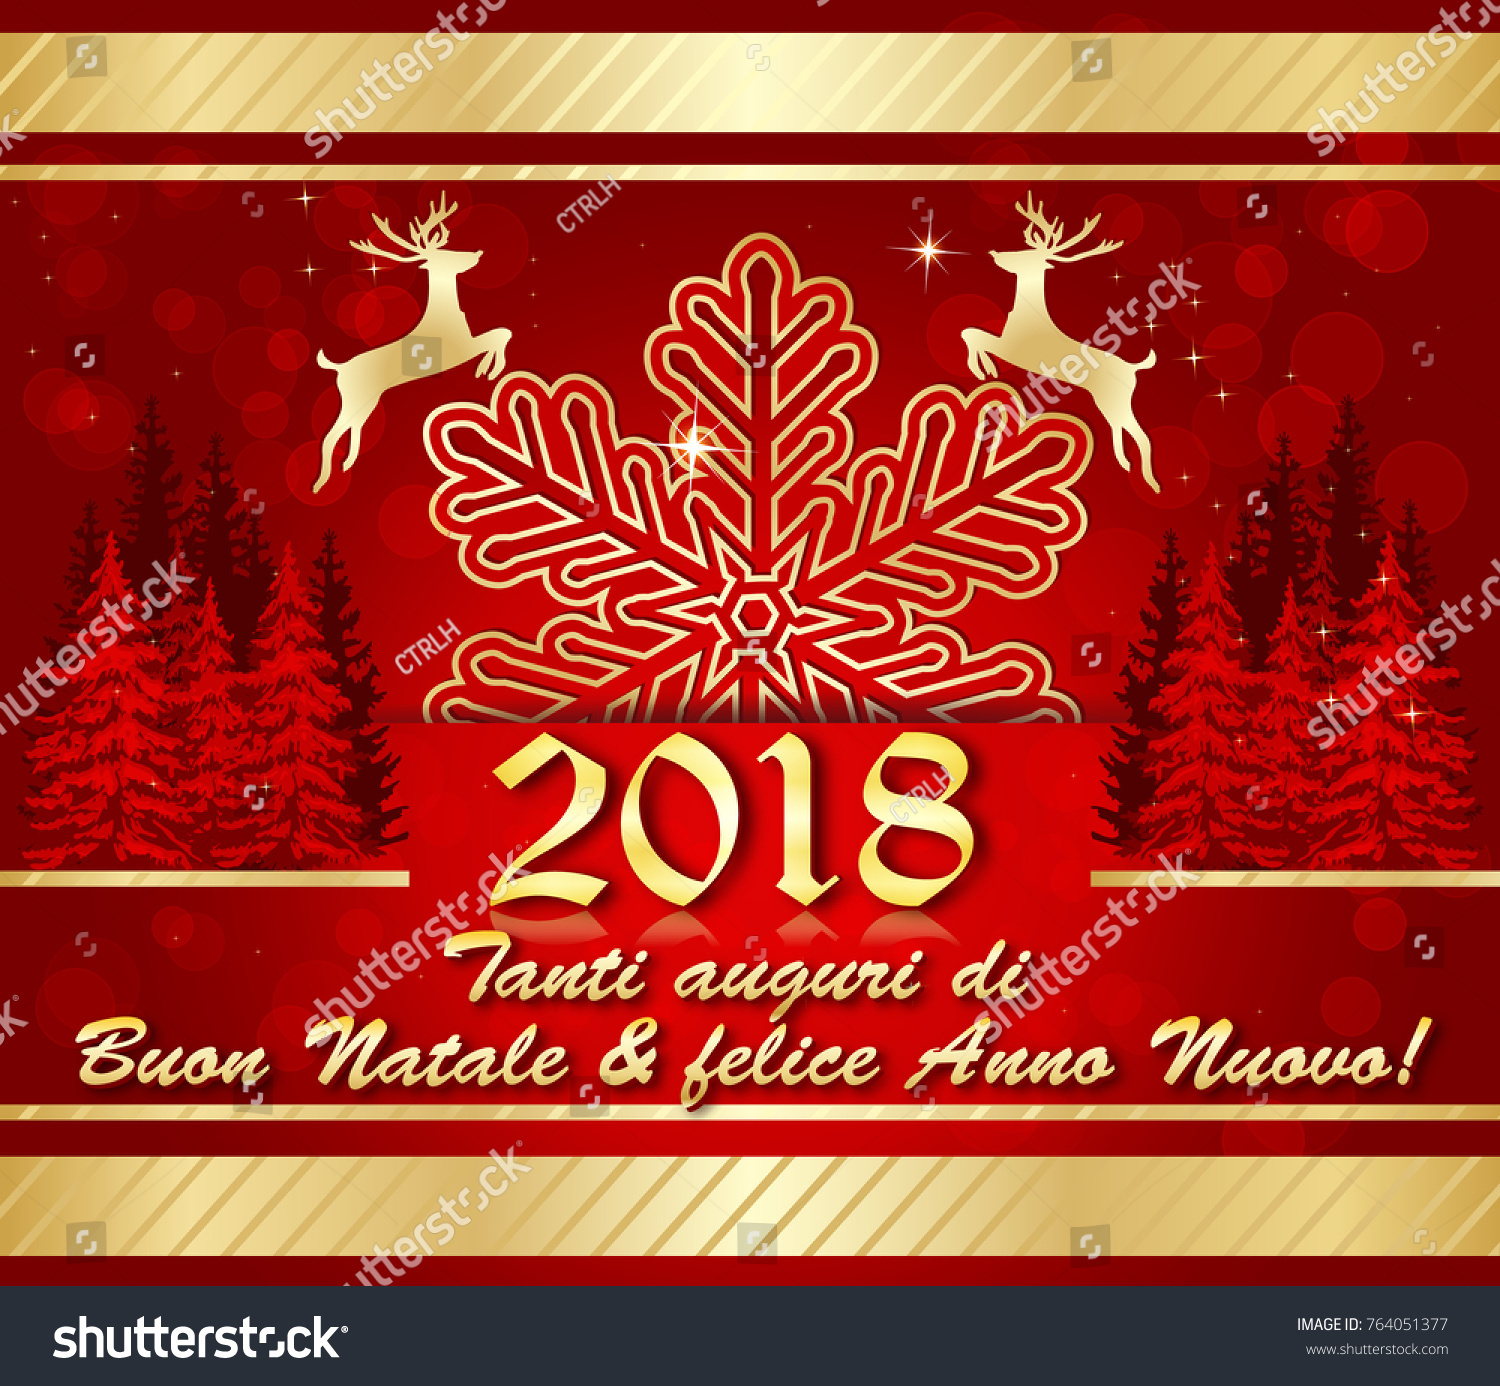 2018 Italian Corporate Holiday Season Greeting Stock Illustration